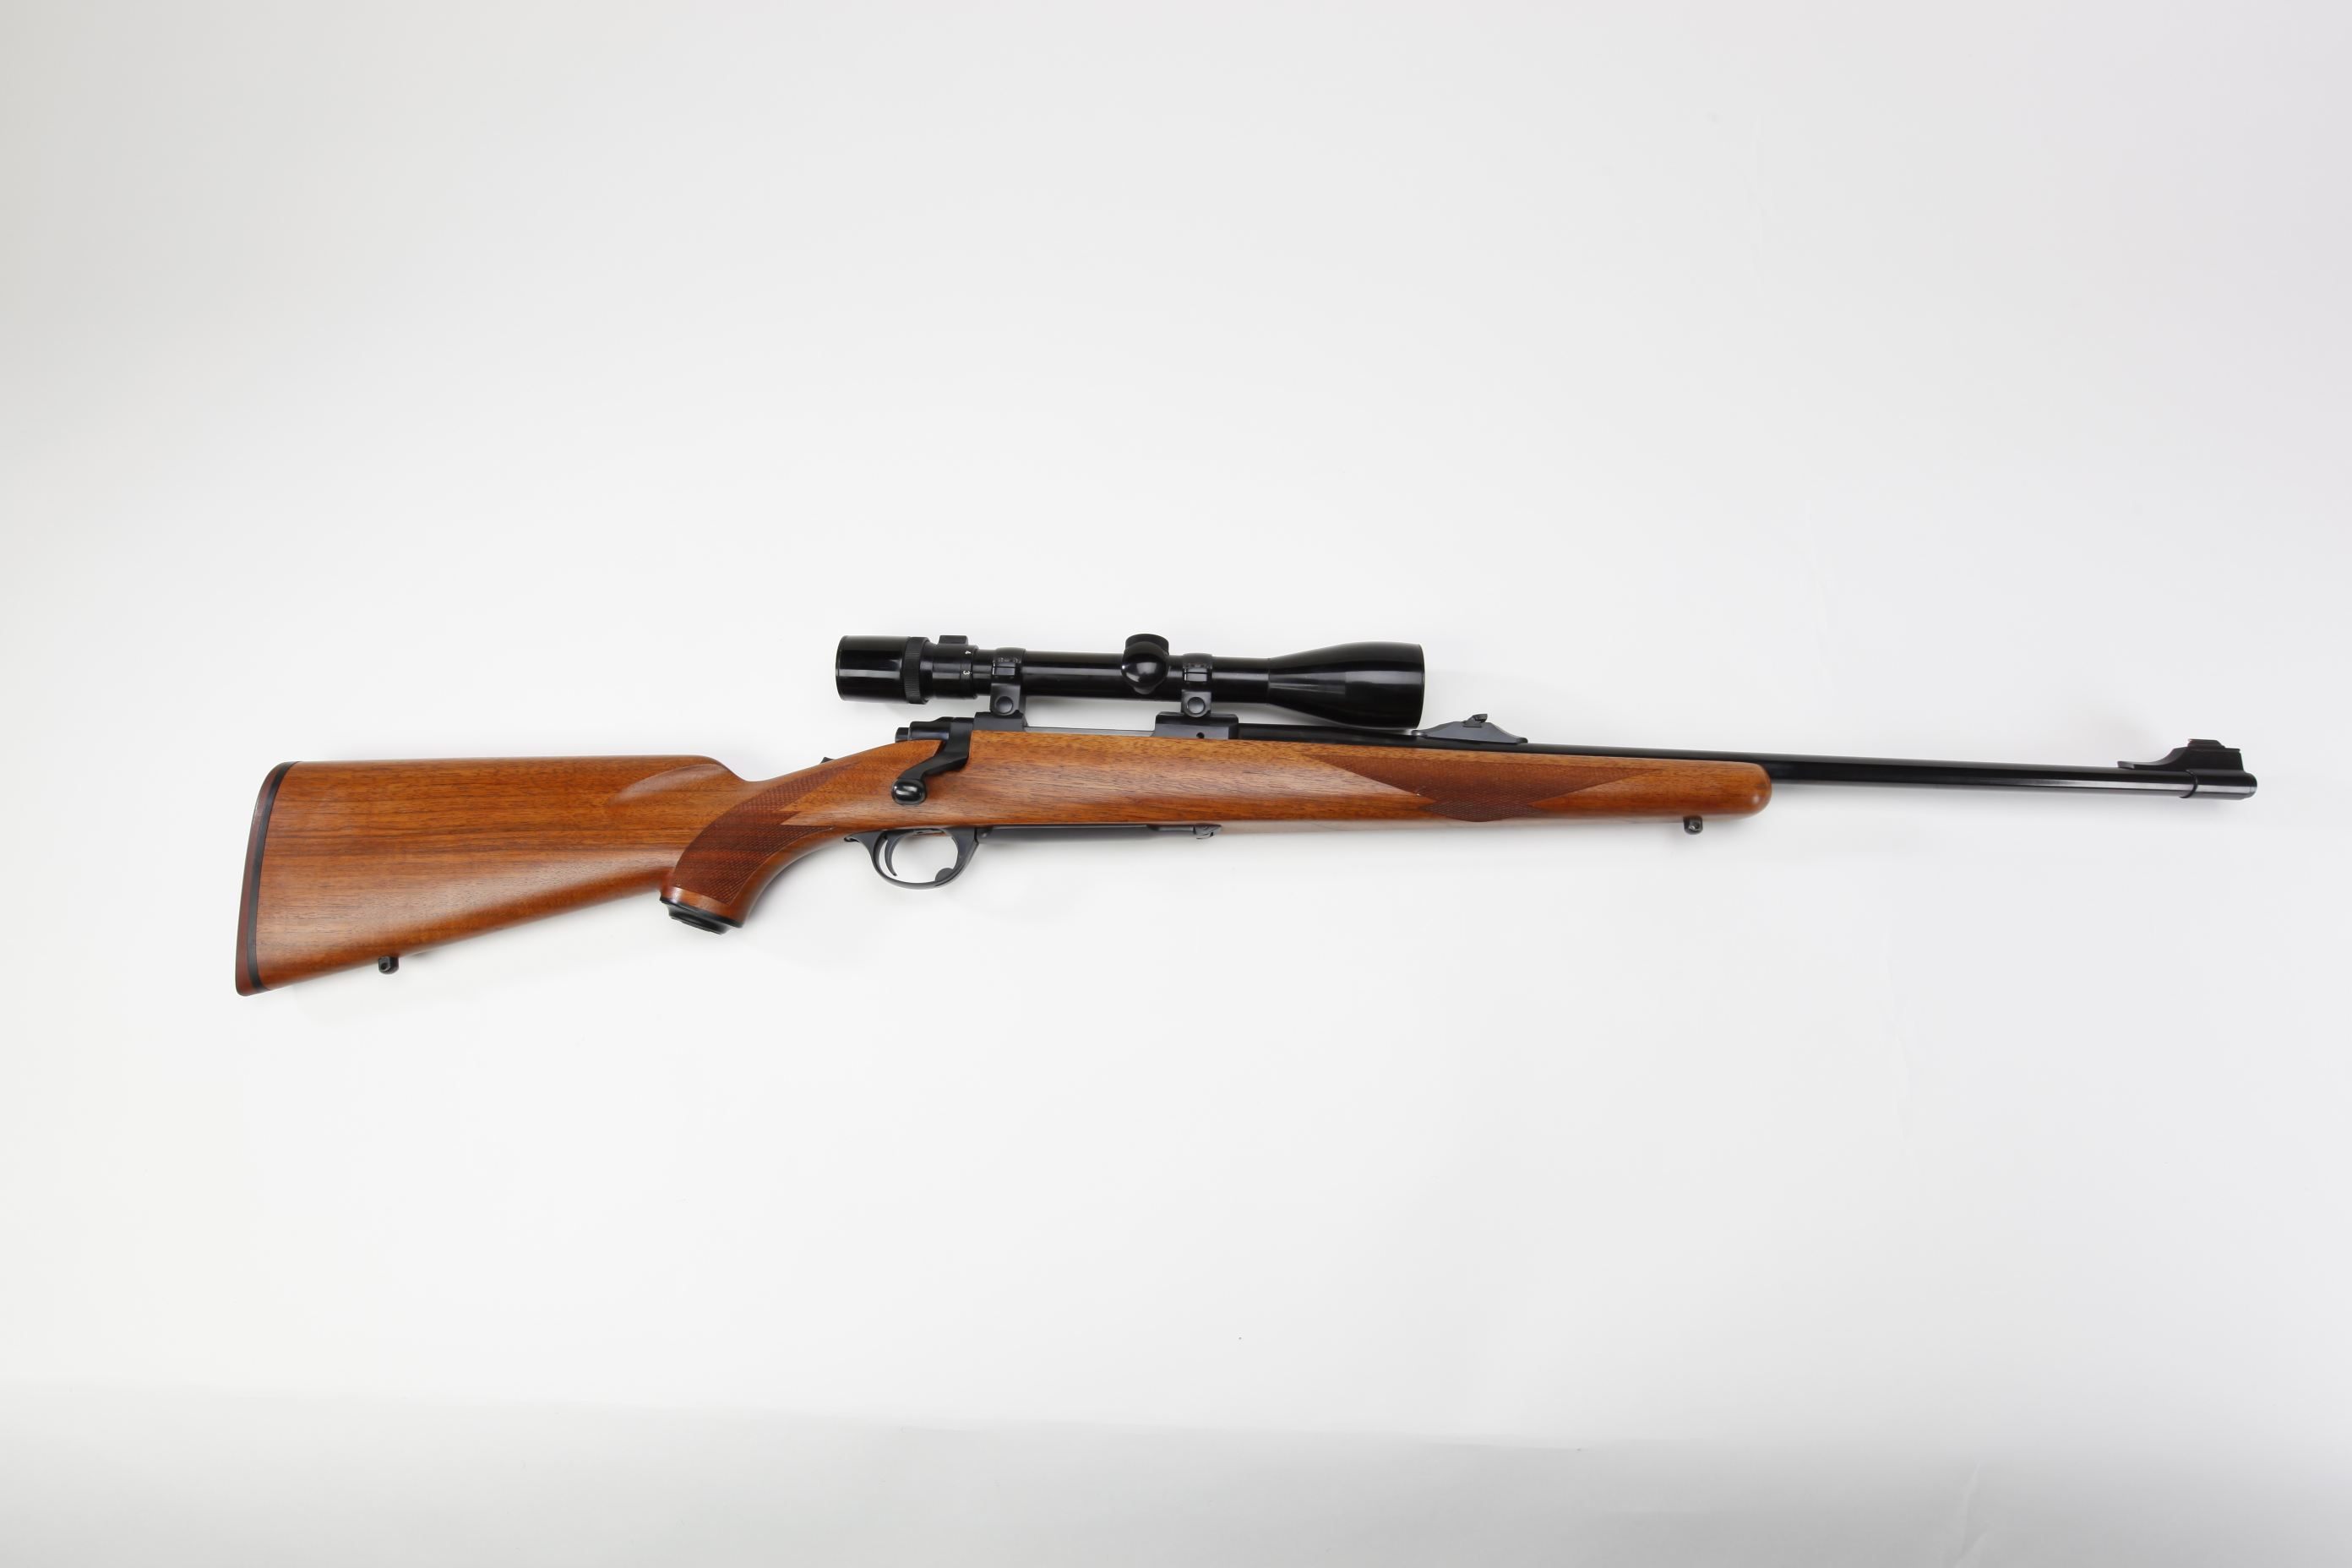 Ruger and Co Model 77 Bolt Action Rifle with telescopic sight